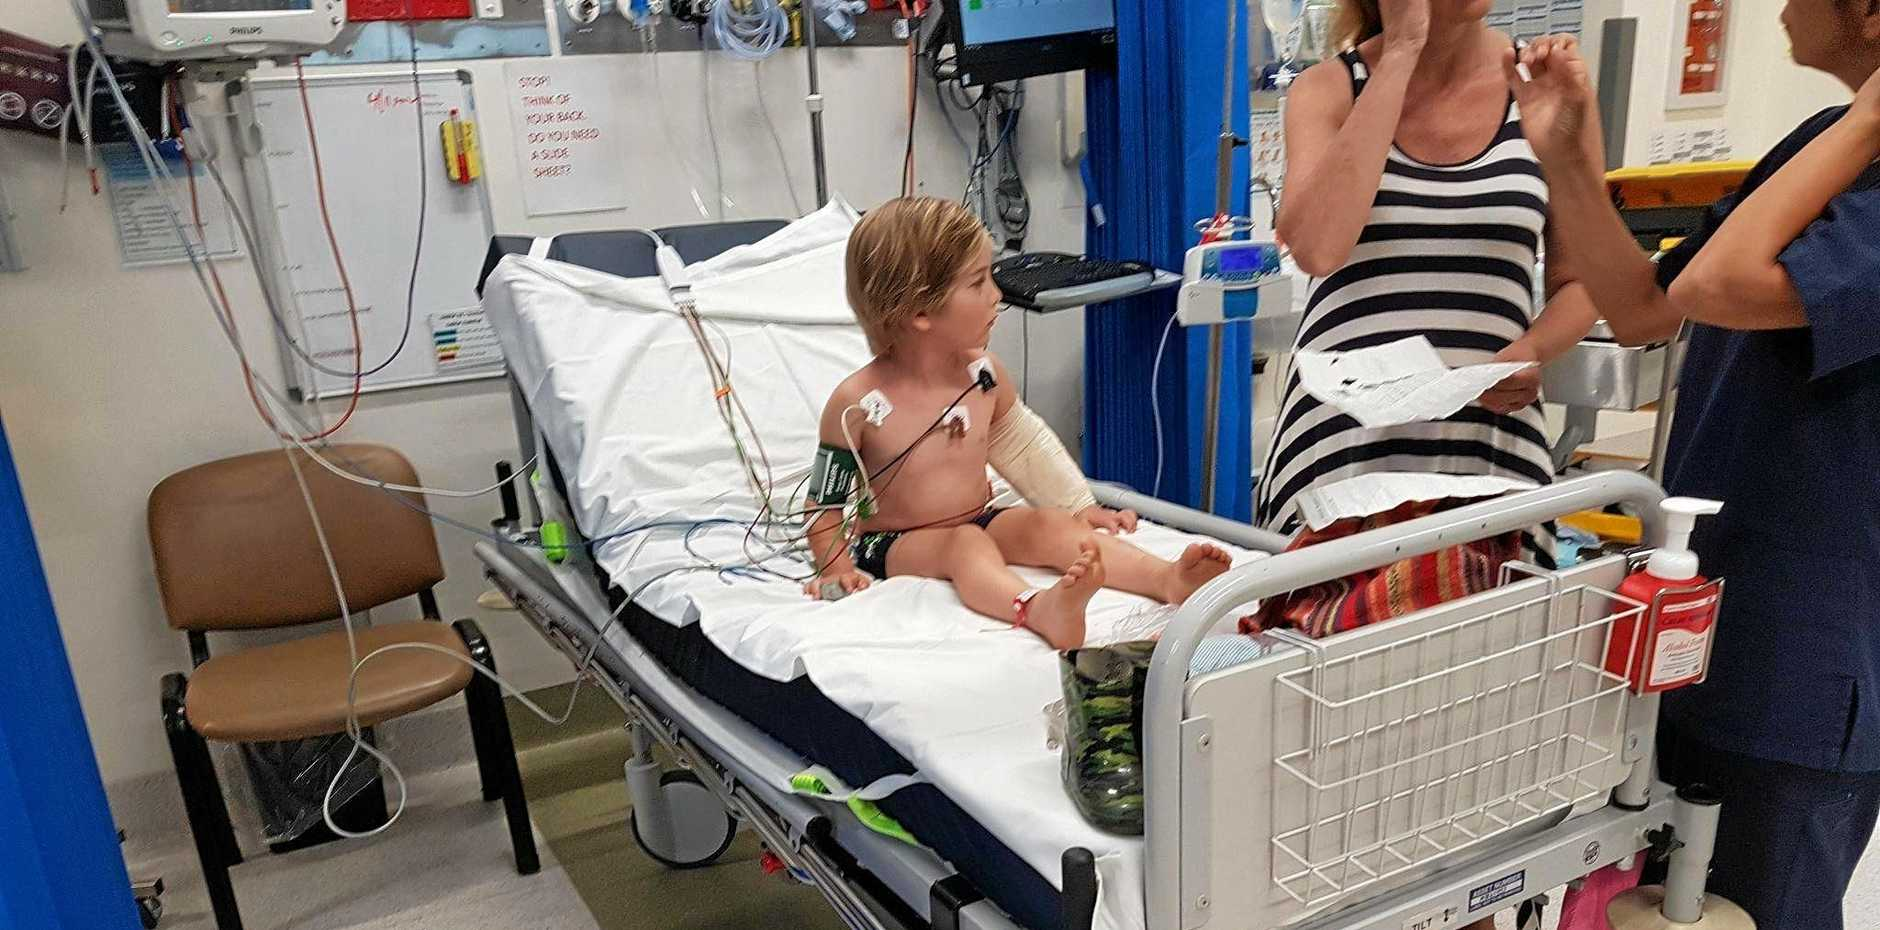 Billy Fetherston, 5, had a brush with death after suffering a severe reaction from a tick bite.